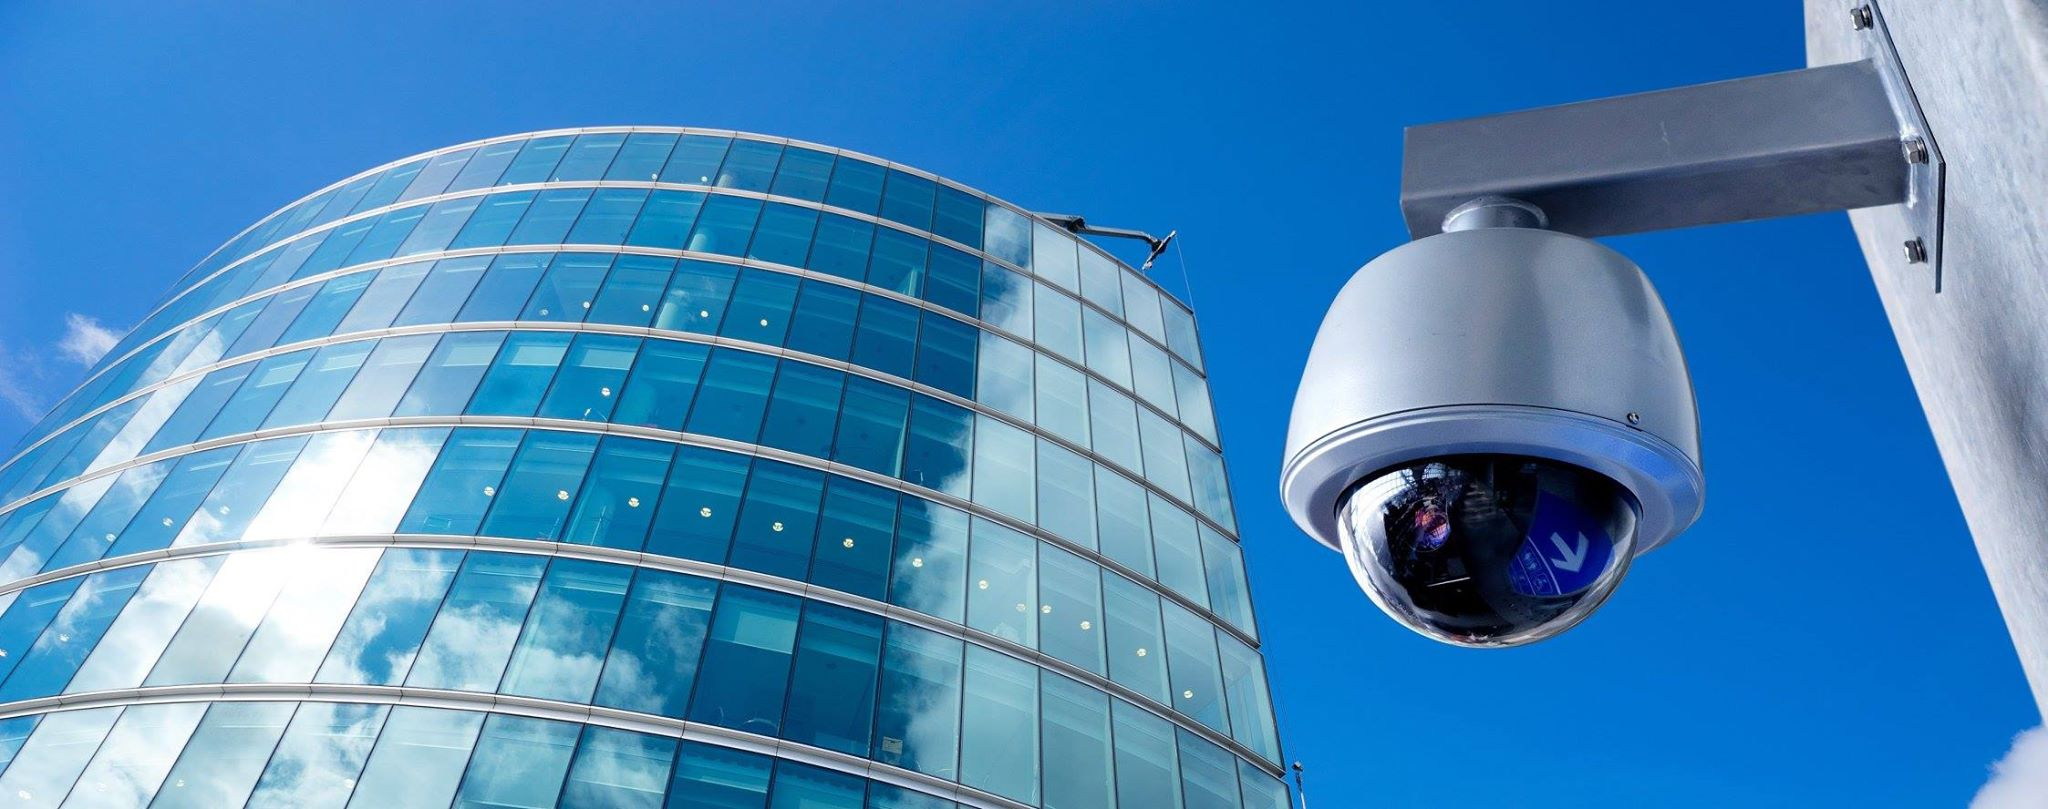 Security Systems Manchester